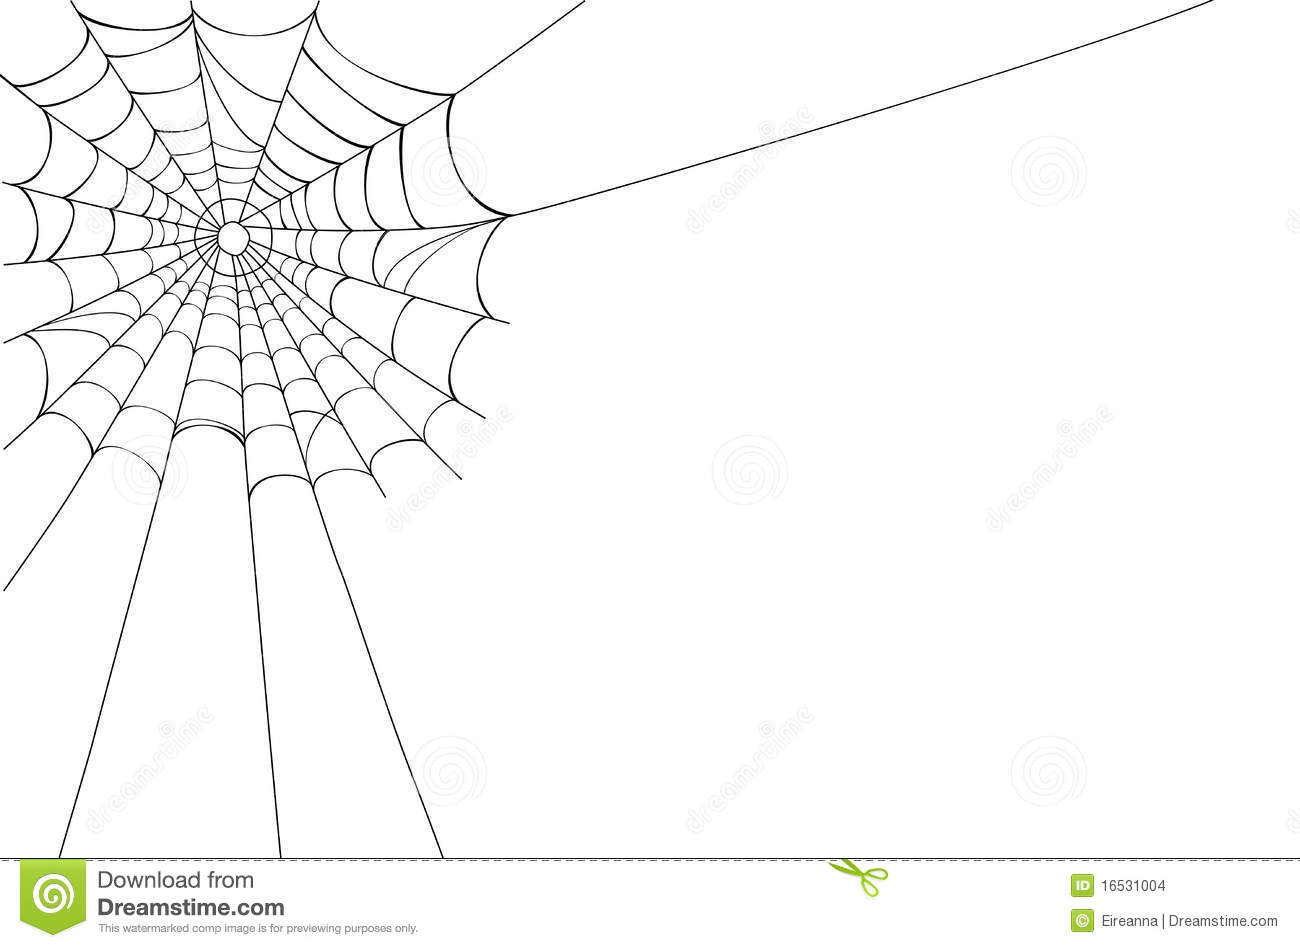 Creepy Spider Web In The Corner  Isolated Over White Background With